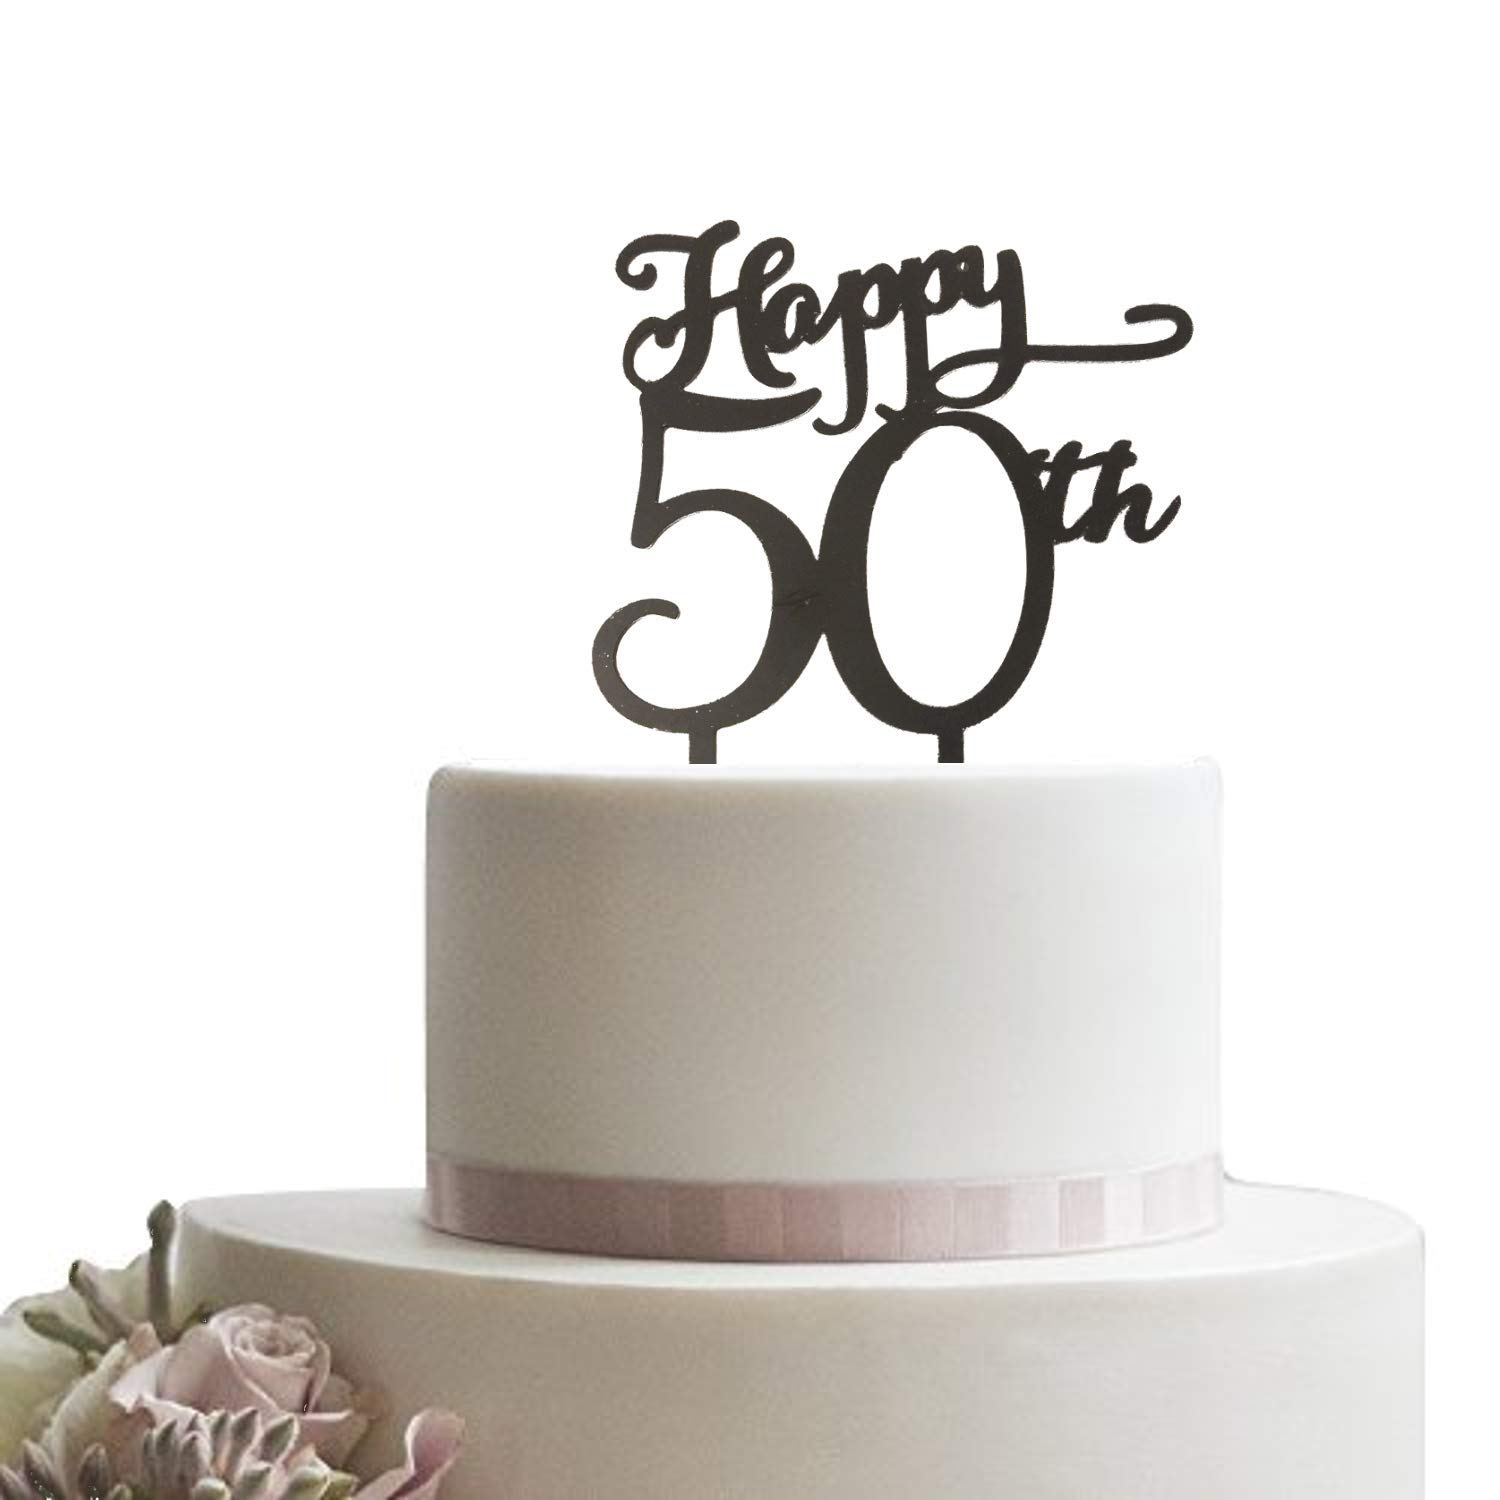 Happy 50th Black Cake Topper Wedding Birthday Anniversary Party Cupcake 50 Years Old Decoration Amazon Grocery Gourmet Food